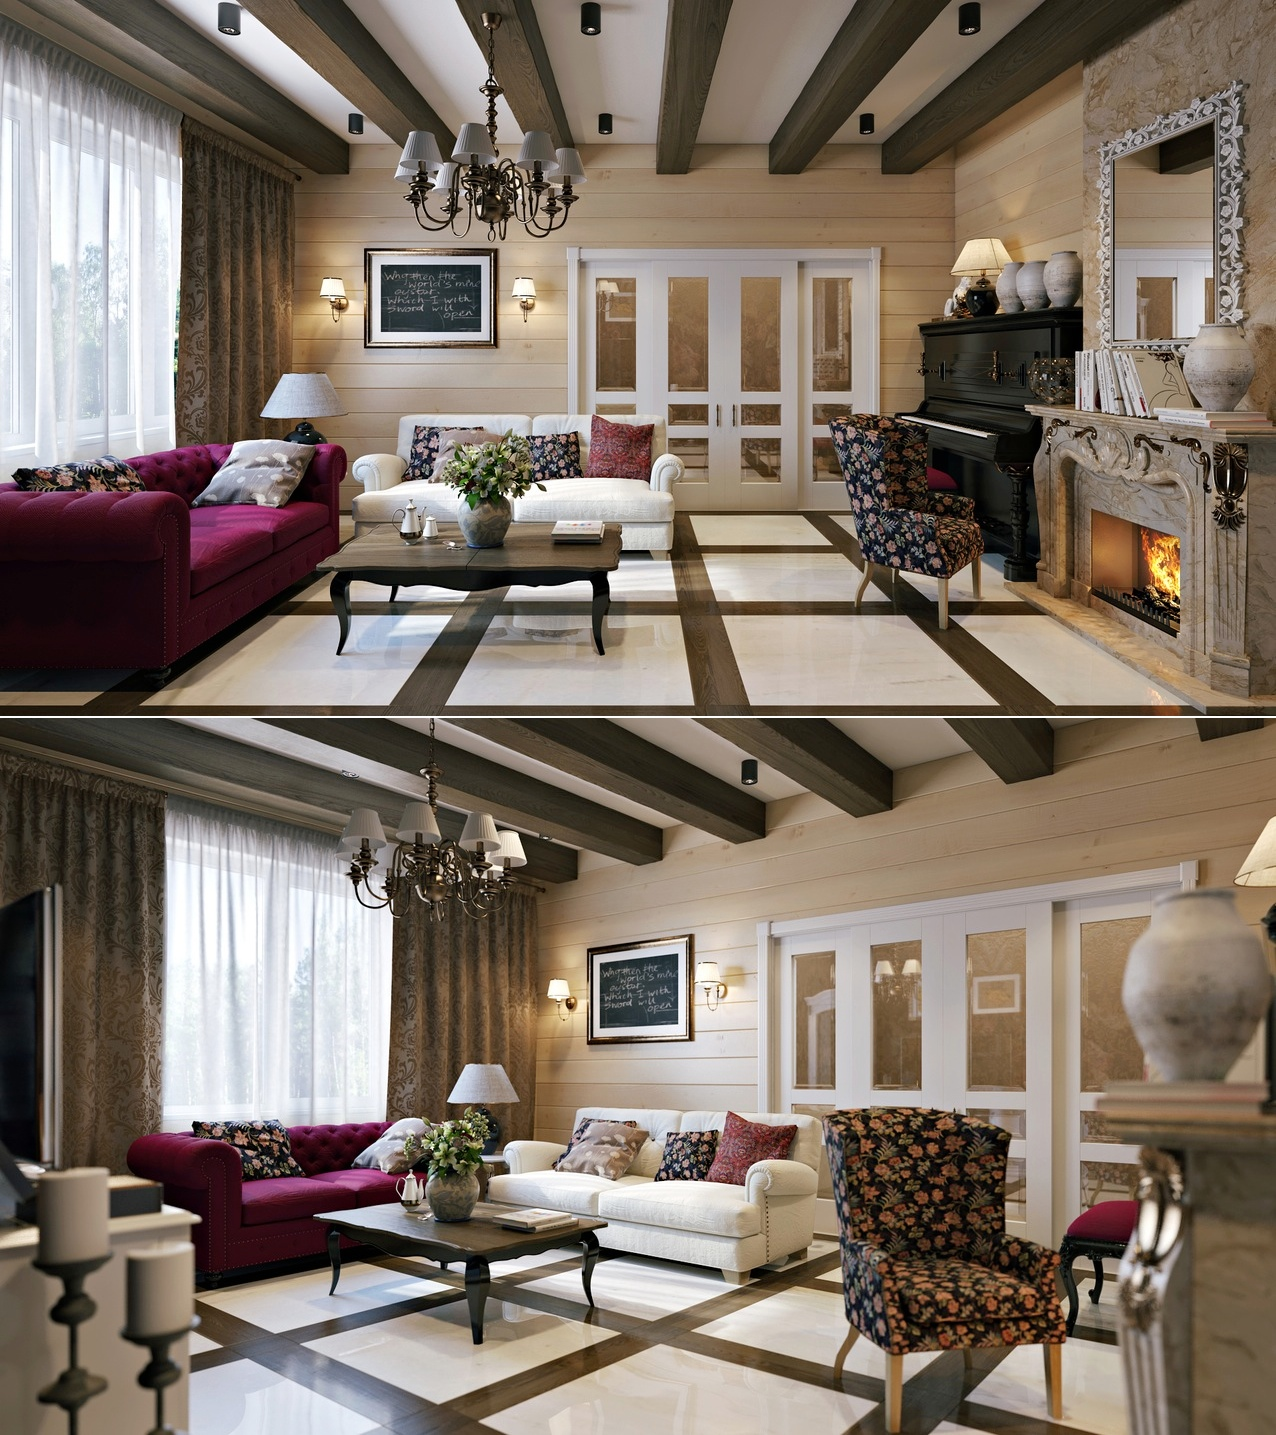 Creative design ideas for living room with luxury and for Creative living room design ideas